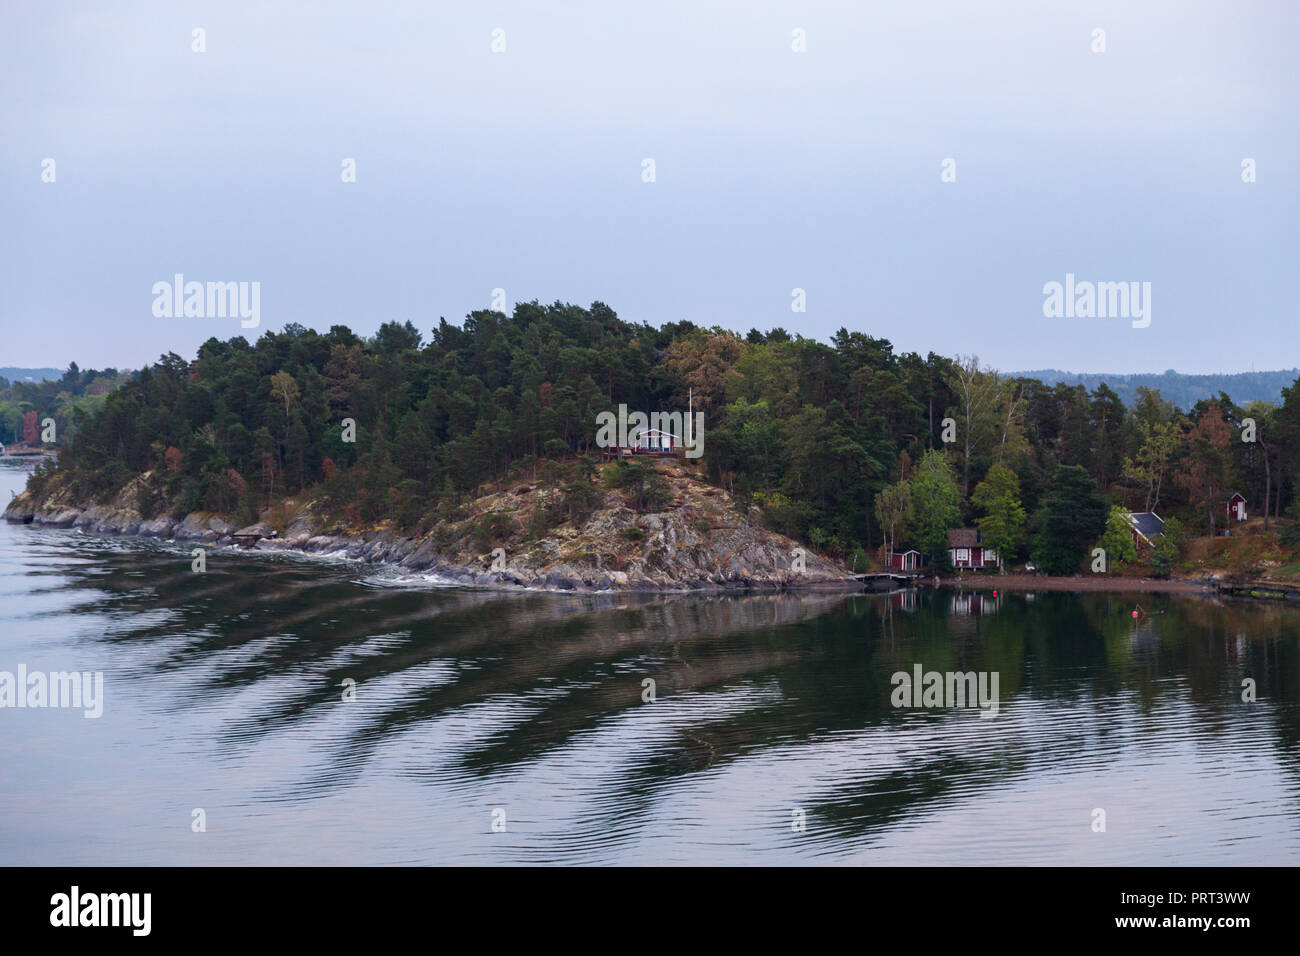 Houses and cottages in quiet Stockholm Archipelago with colorful trees, Stockholm Sweden - Stock Image